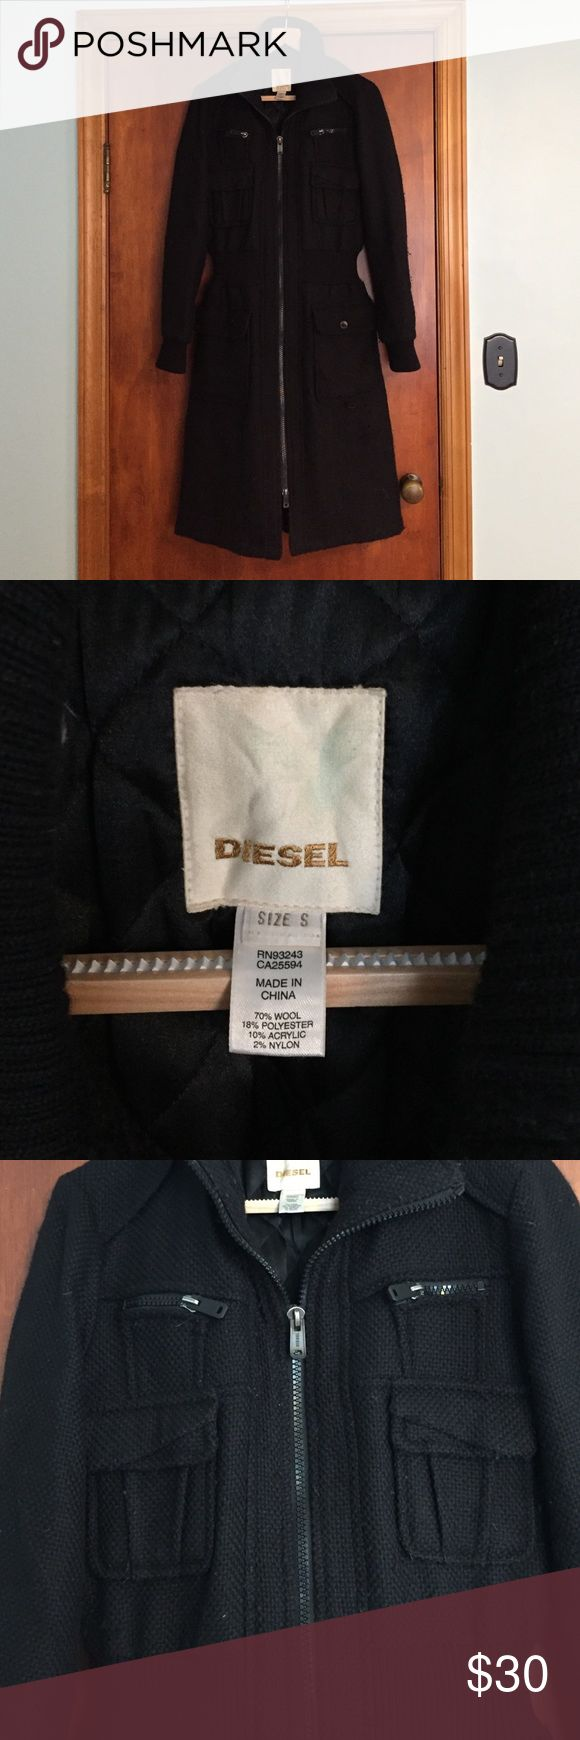 Women's Black Diesel Coat Very warm women's black Diesel coat. Zip front with lots of pockets. In good preowned condition with pilling over entire coat. I'm sure it could be cleaned. Diesel Jackets & Coats